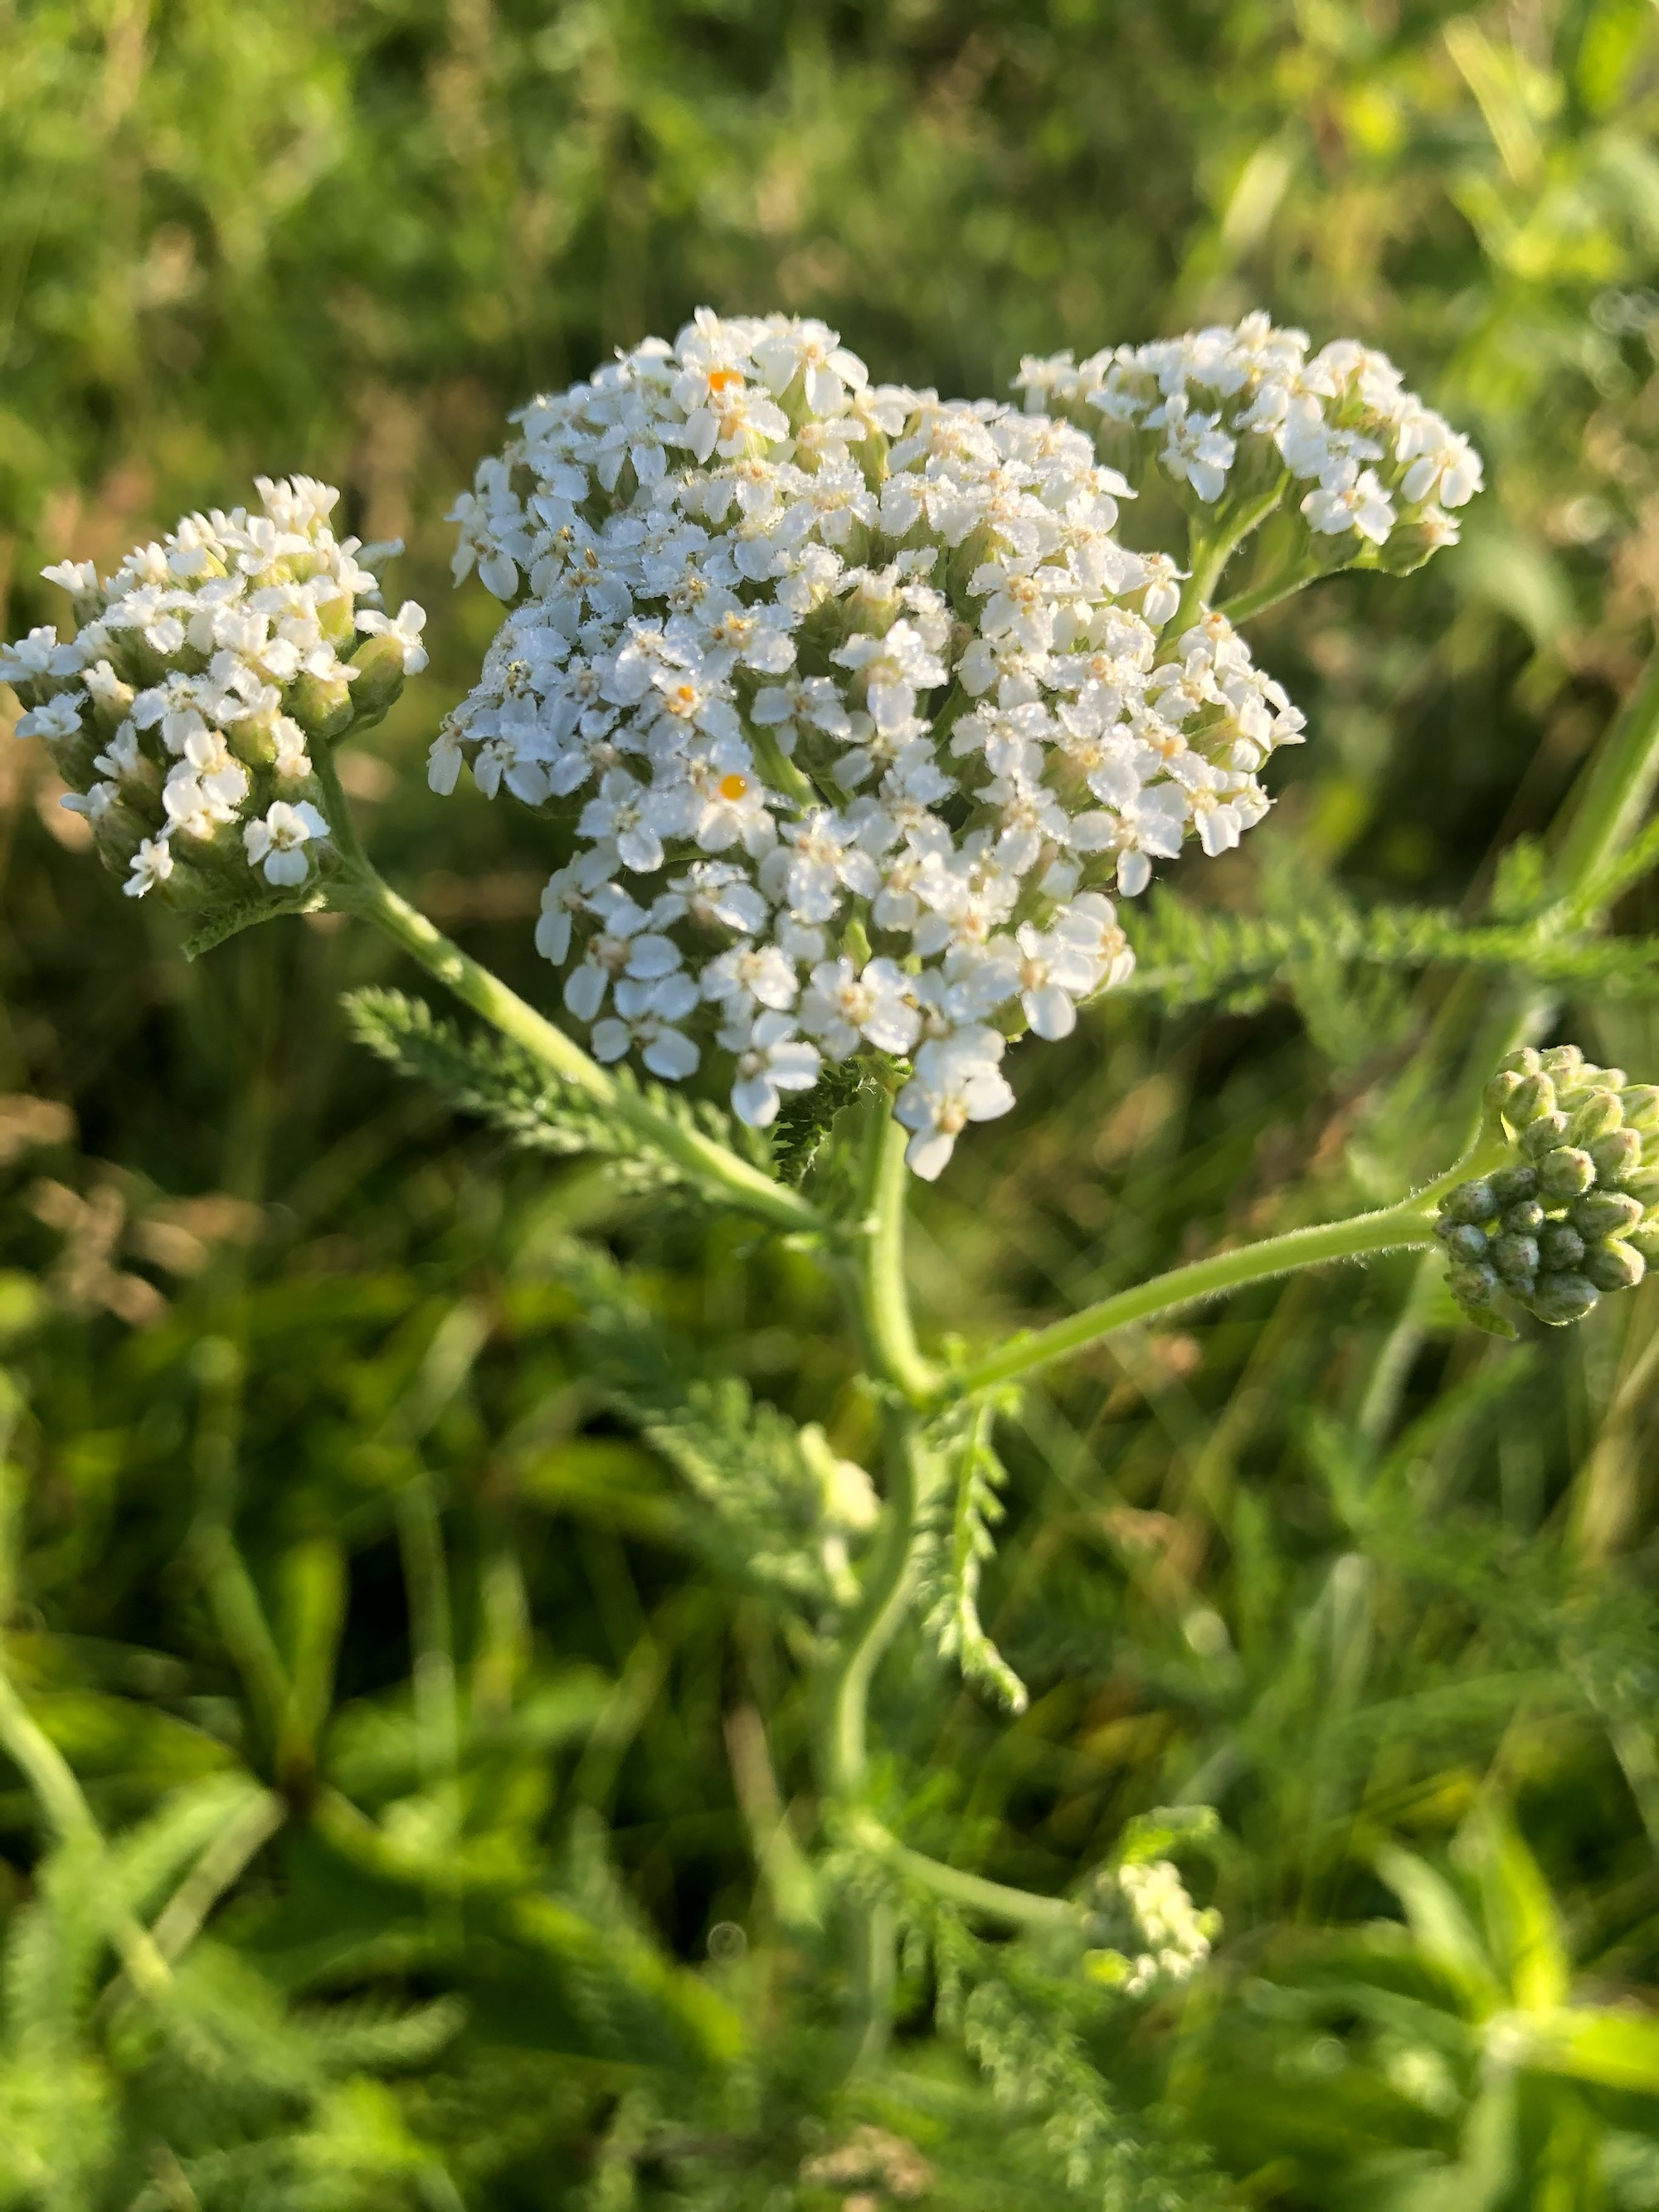 Common Yarrow on shore of Marion Dunn Pond on June 18, 2020.